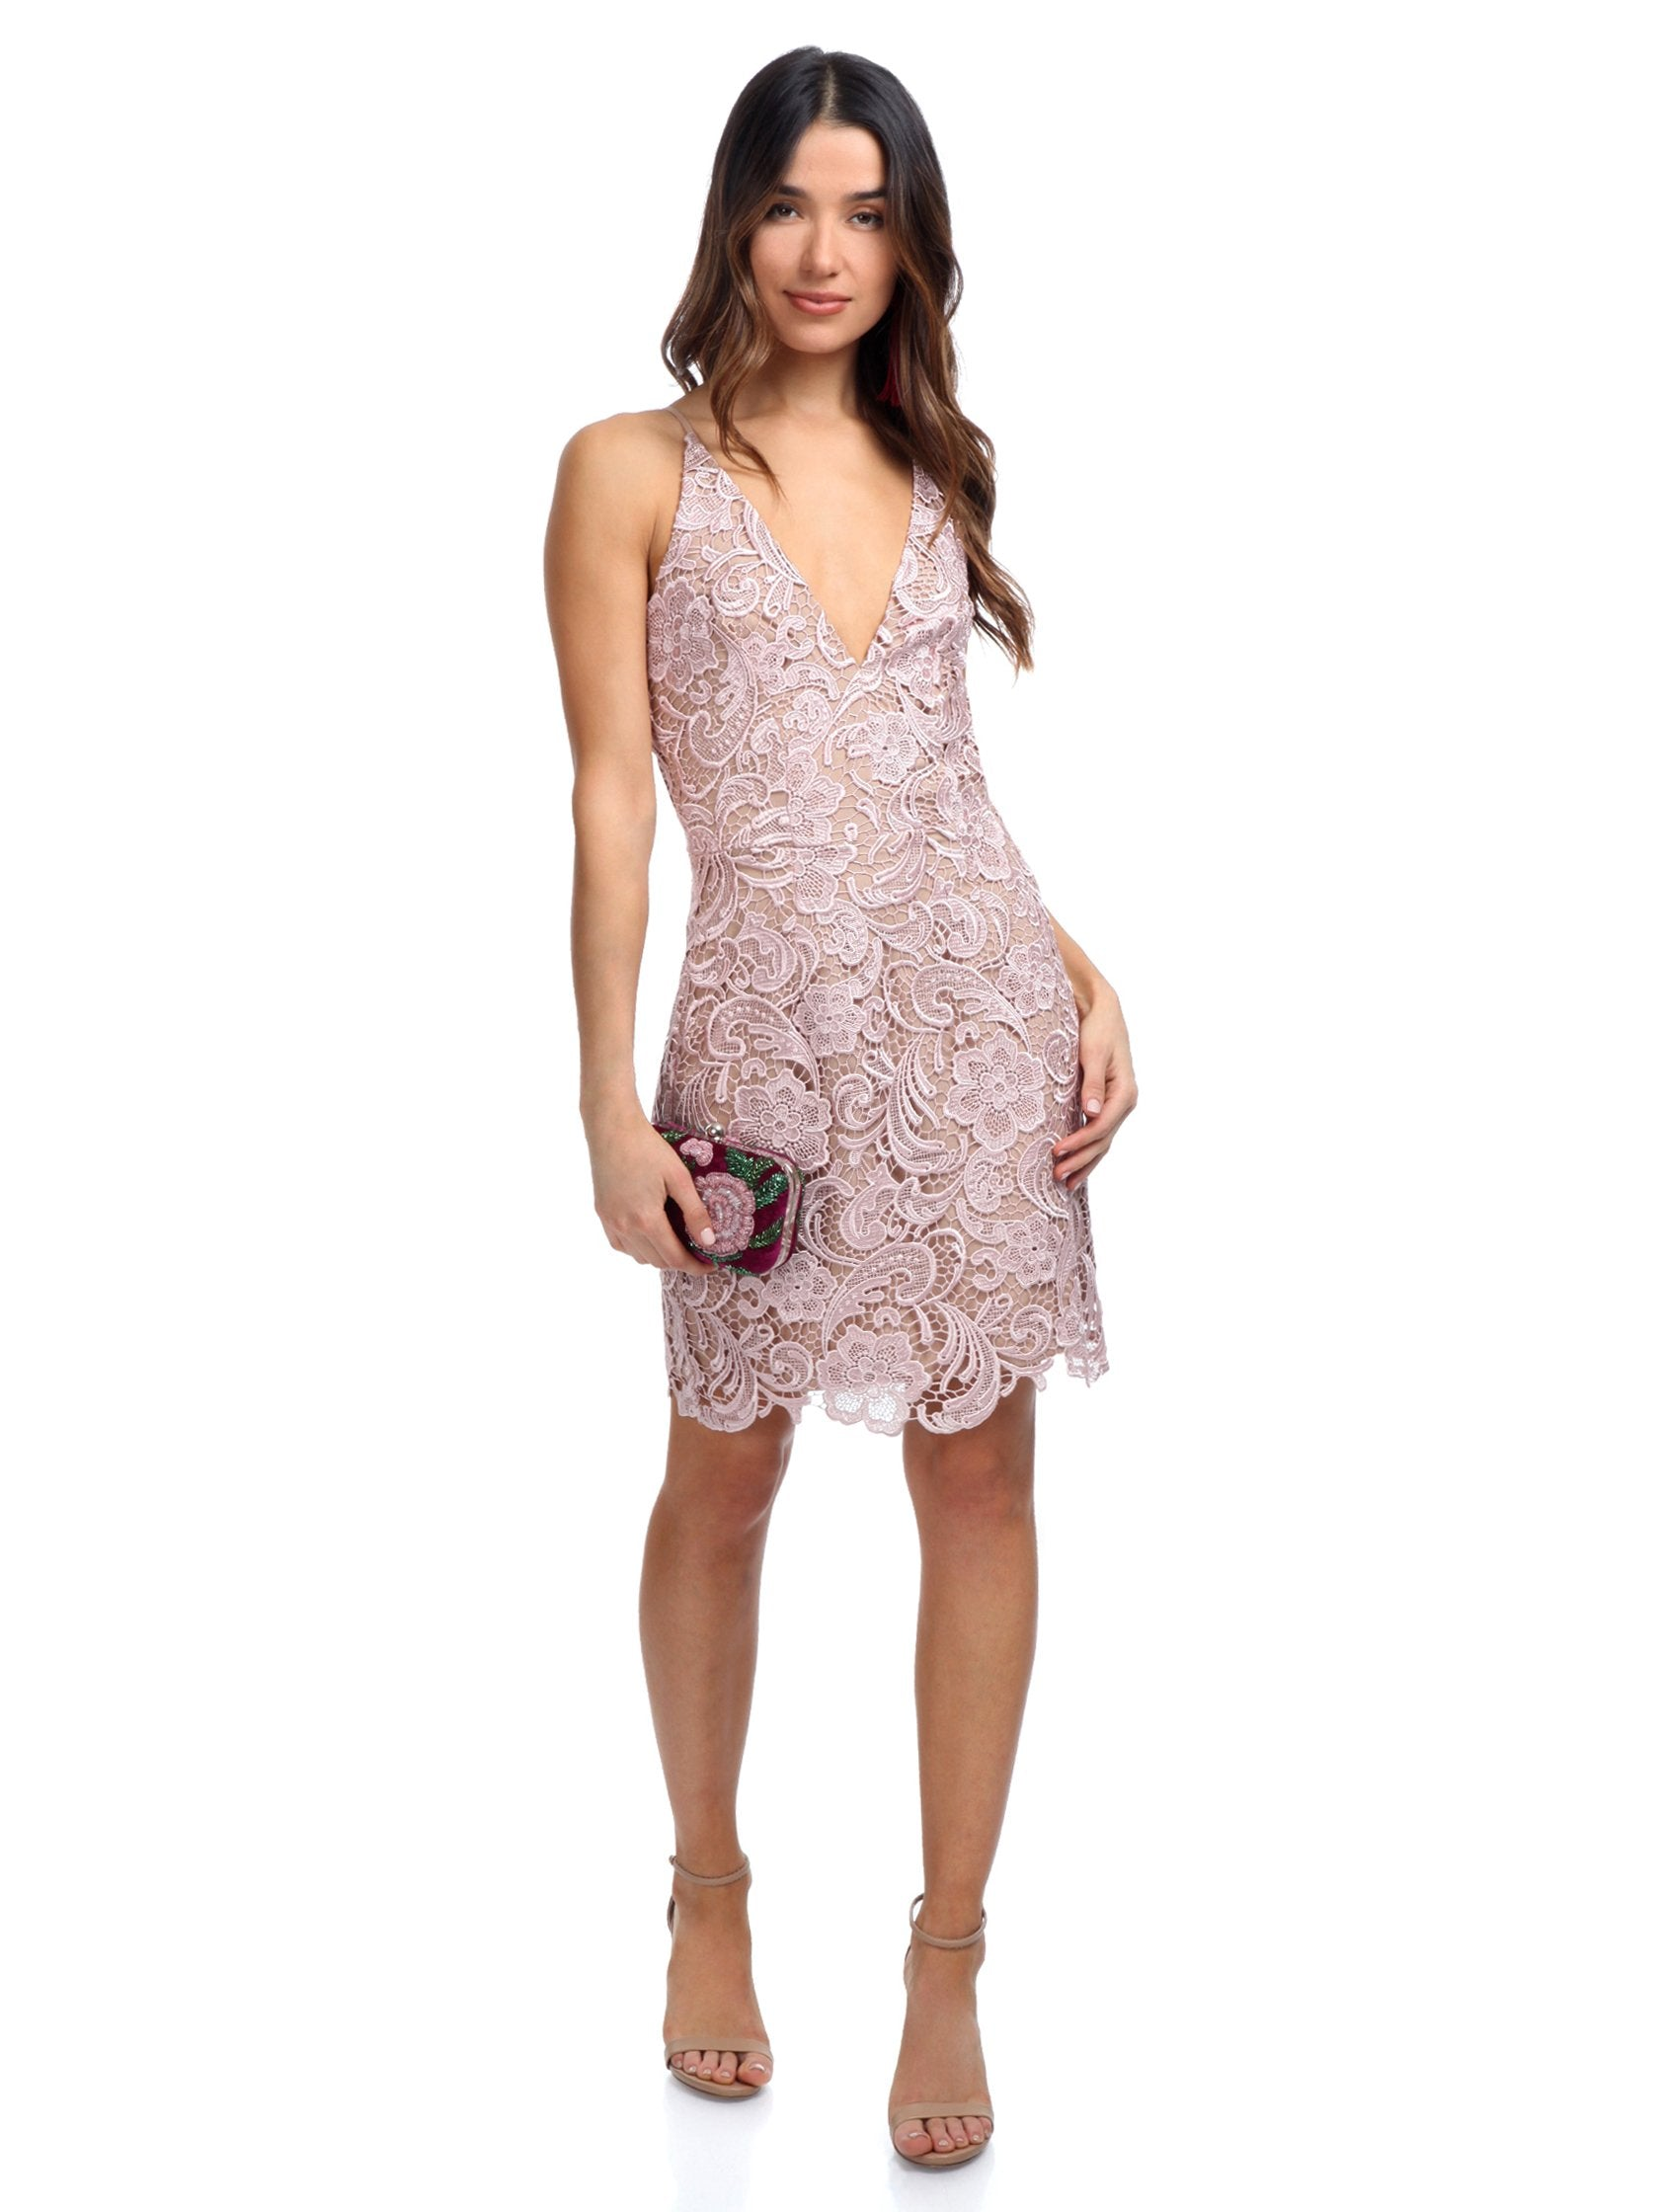 Girl outfit in a dress rental from Dress the Population called Allie Sheath Dress